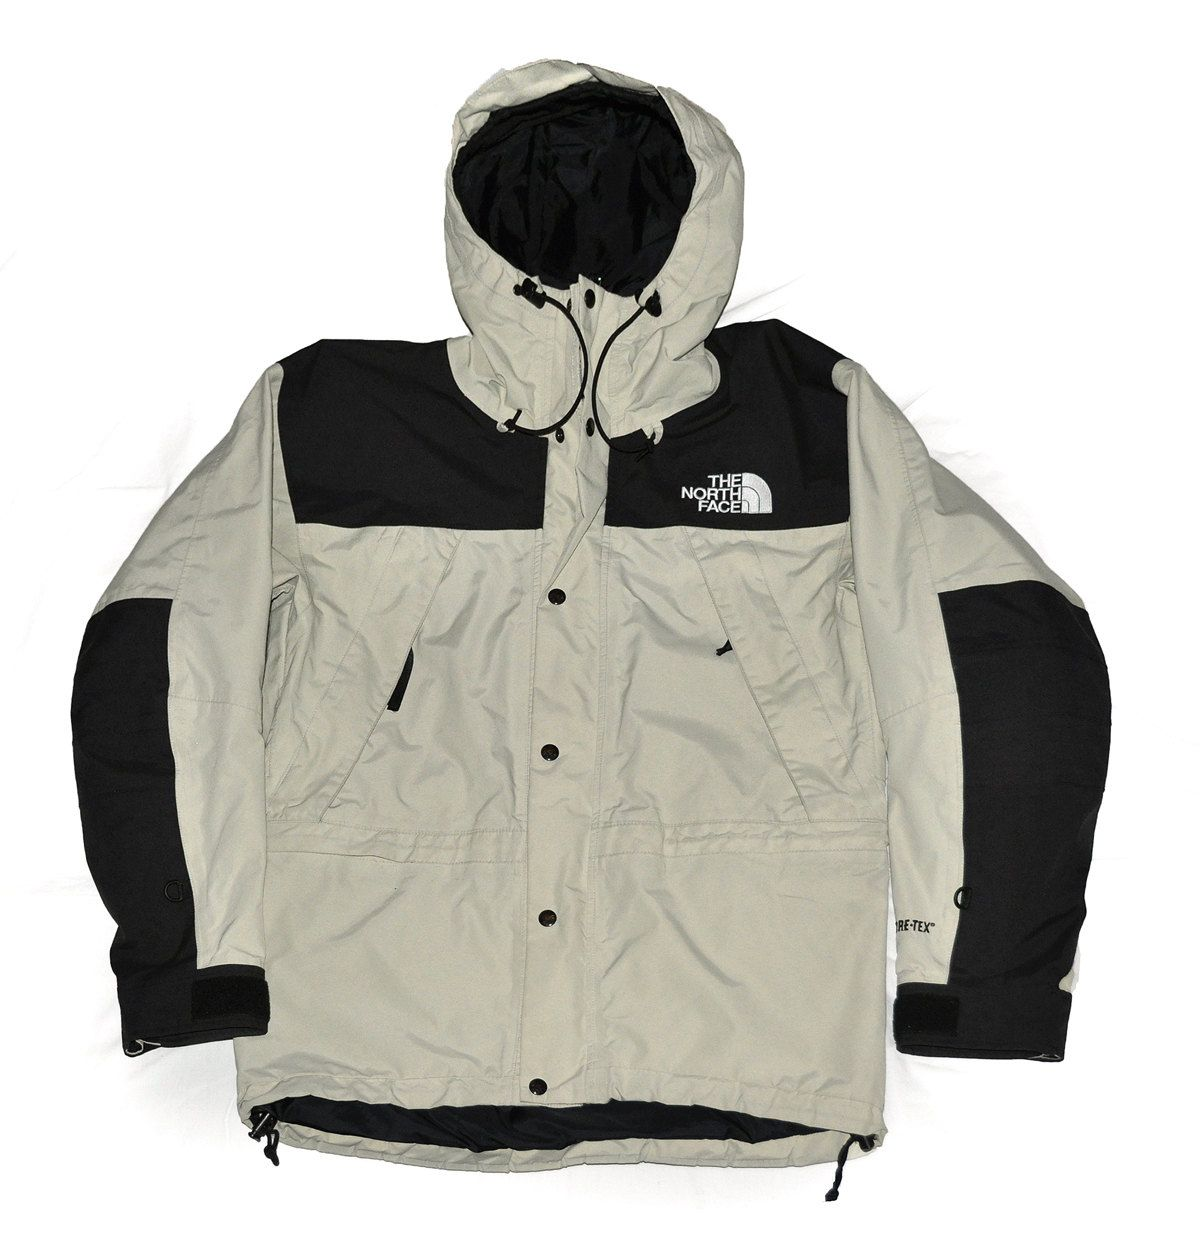 56fe14fcc Vintage 90s The North Face Mountain Guide Gore-Tex jacket Beige ...